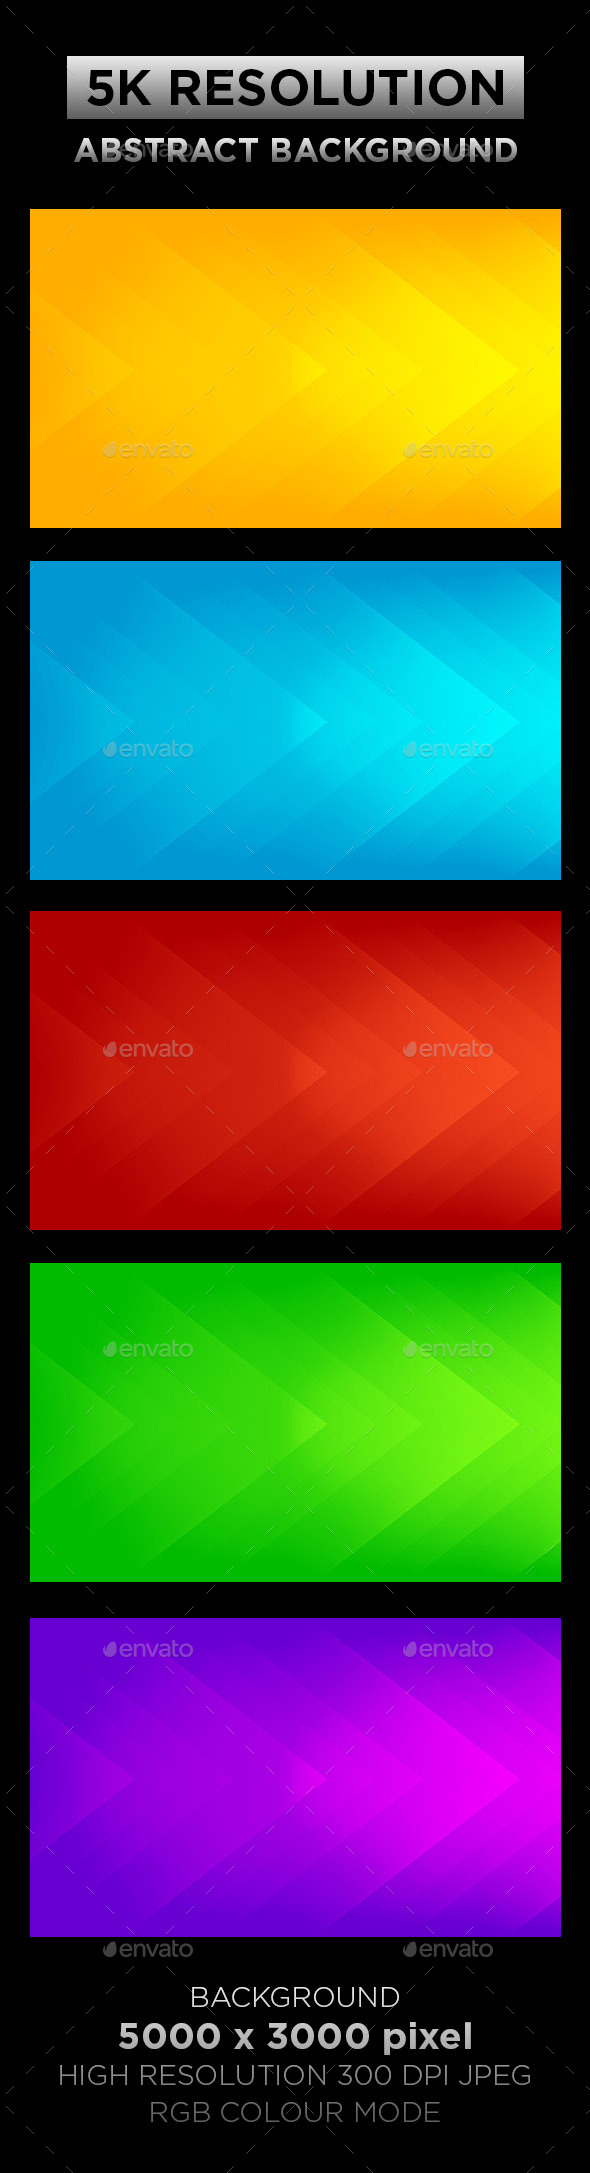 Abstract Background 002 - Backgrounds Graphics